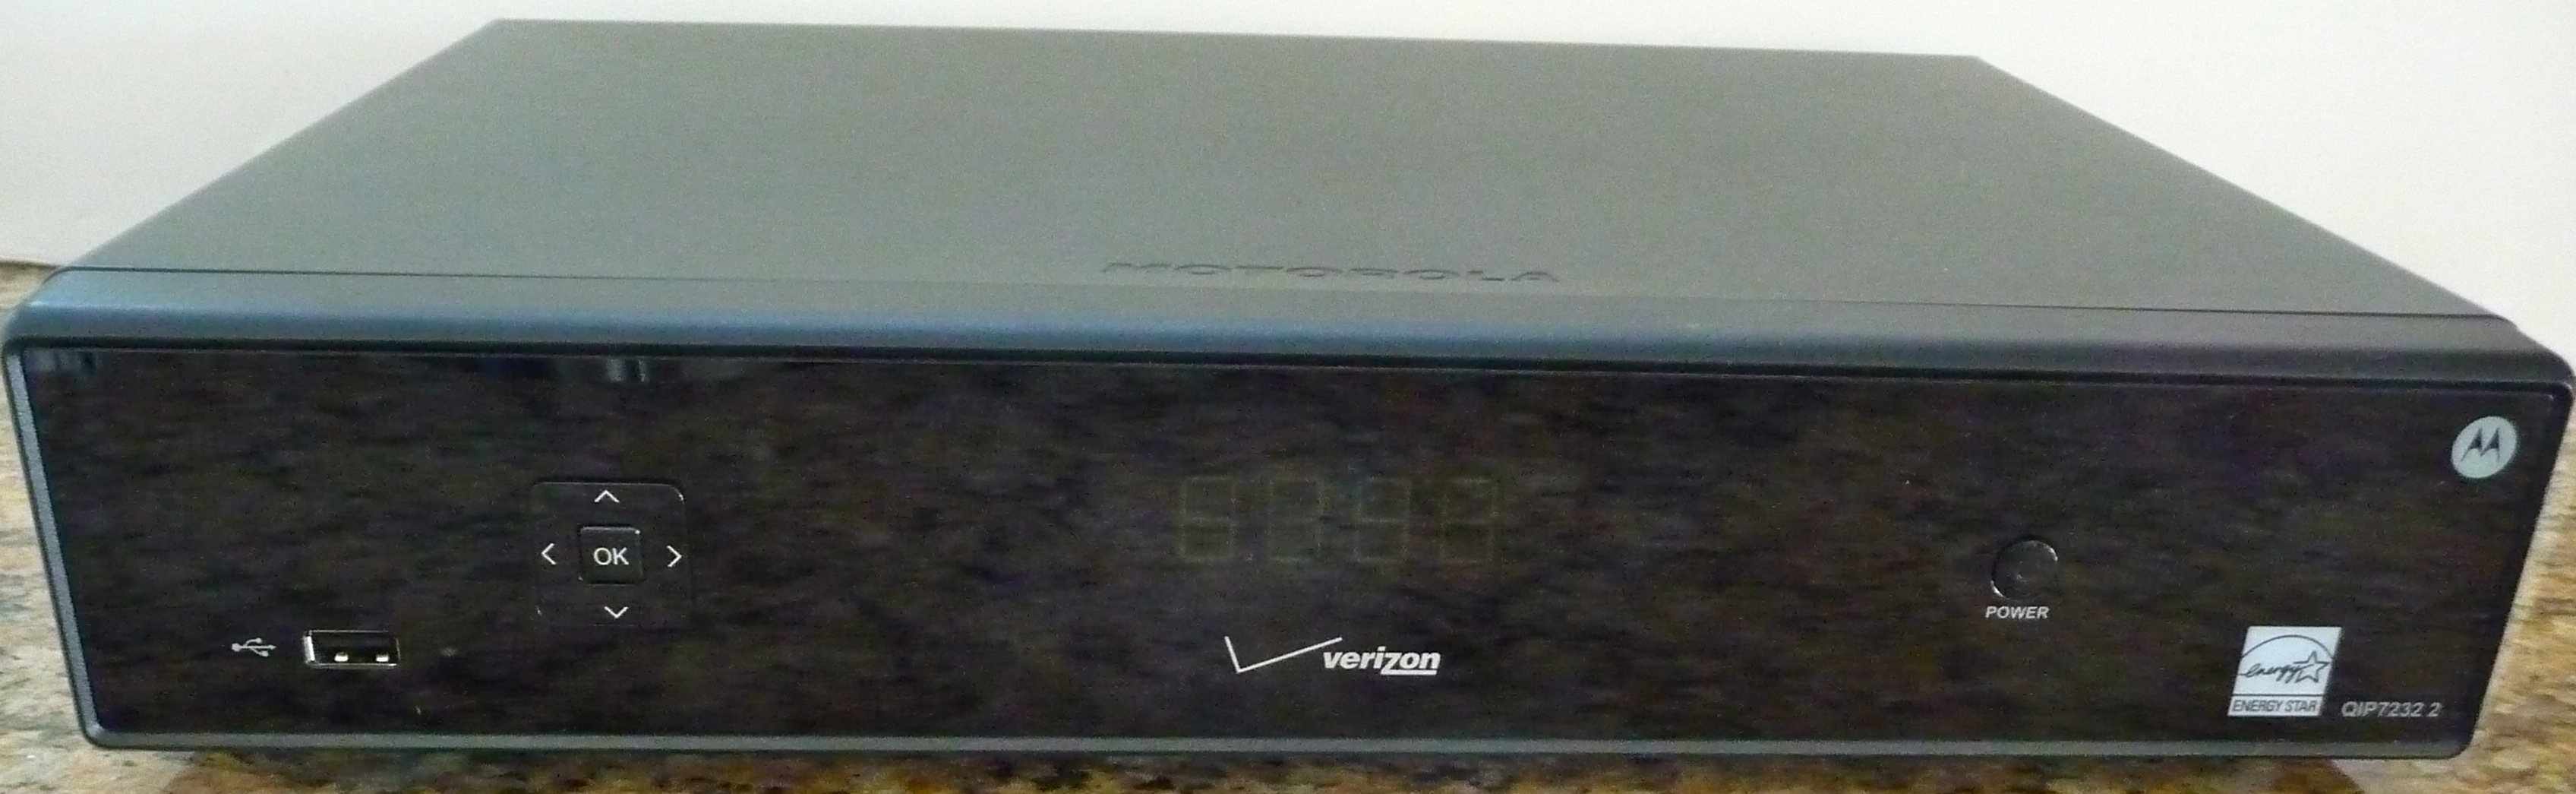 Tech Update: New Verizon Fios DVR Grows Up and Gets A Face Lift